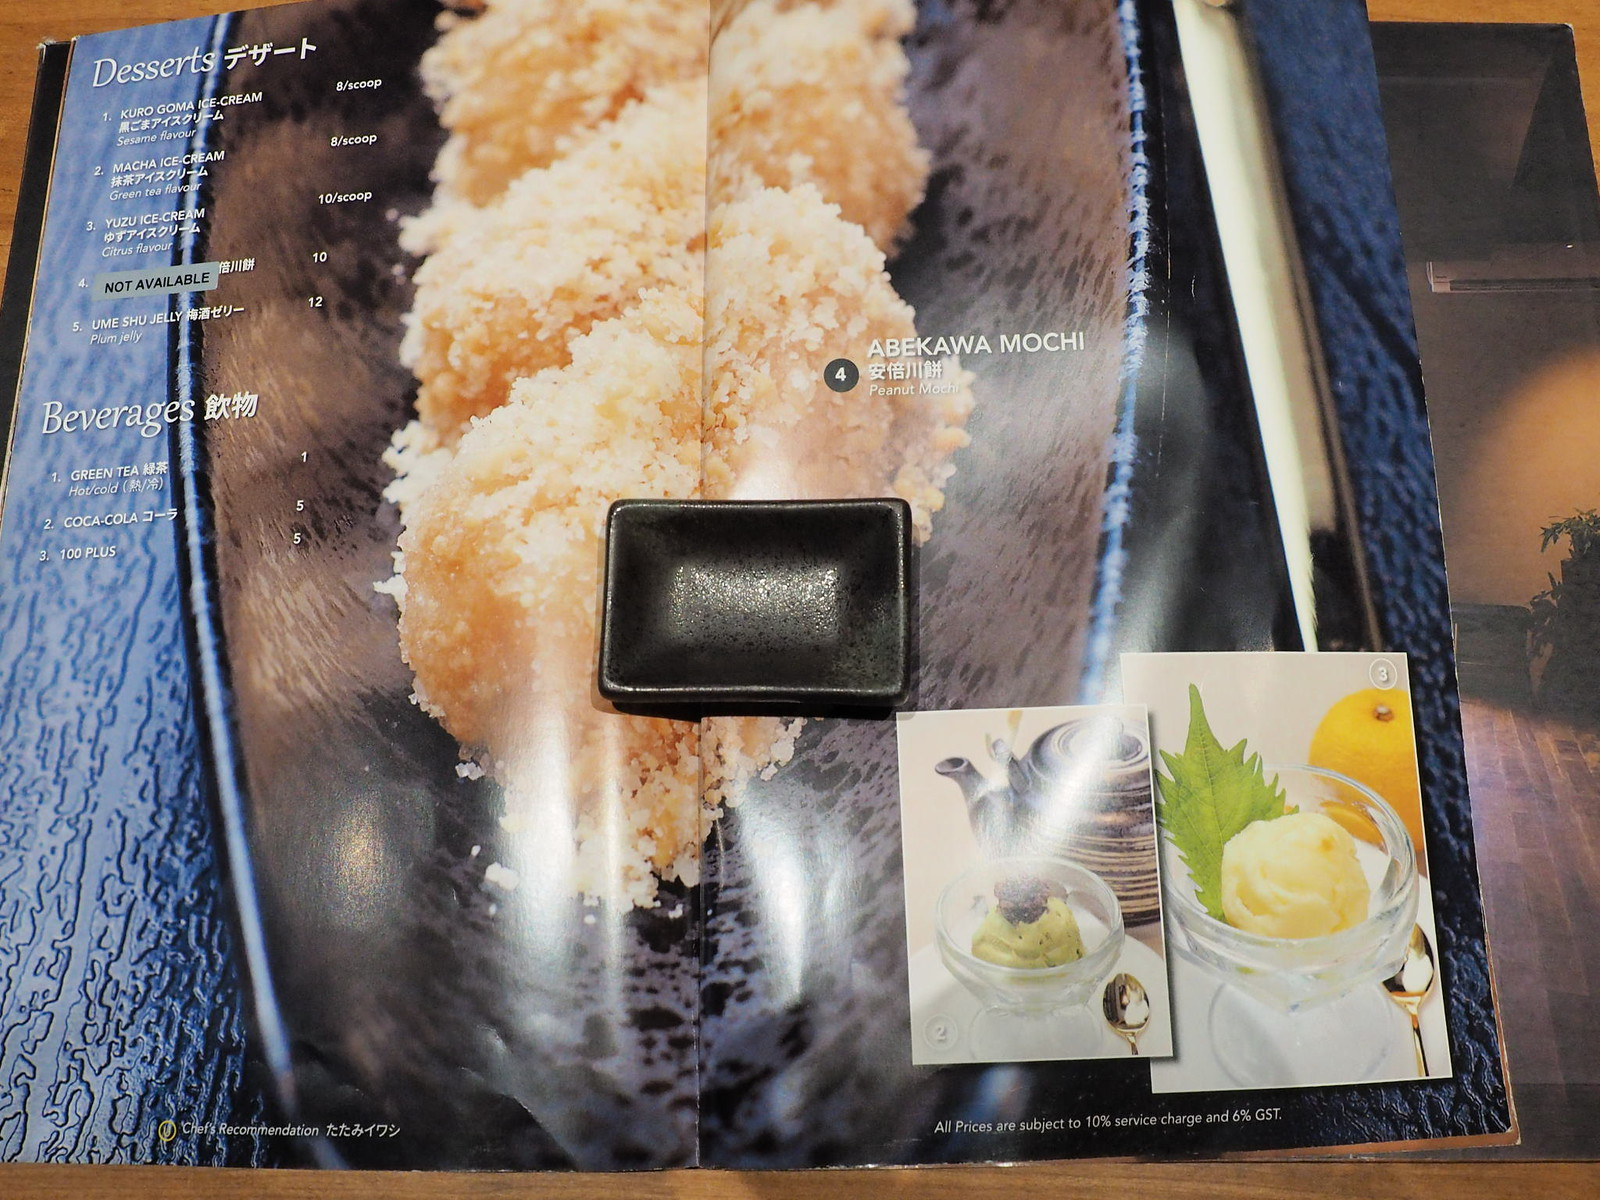 The desserts, beverages and Abekawa Mochi